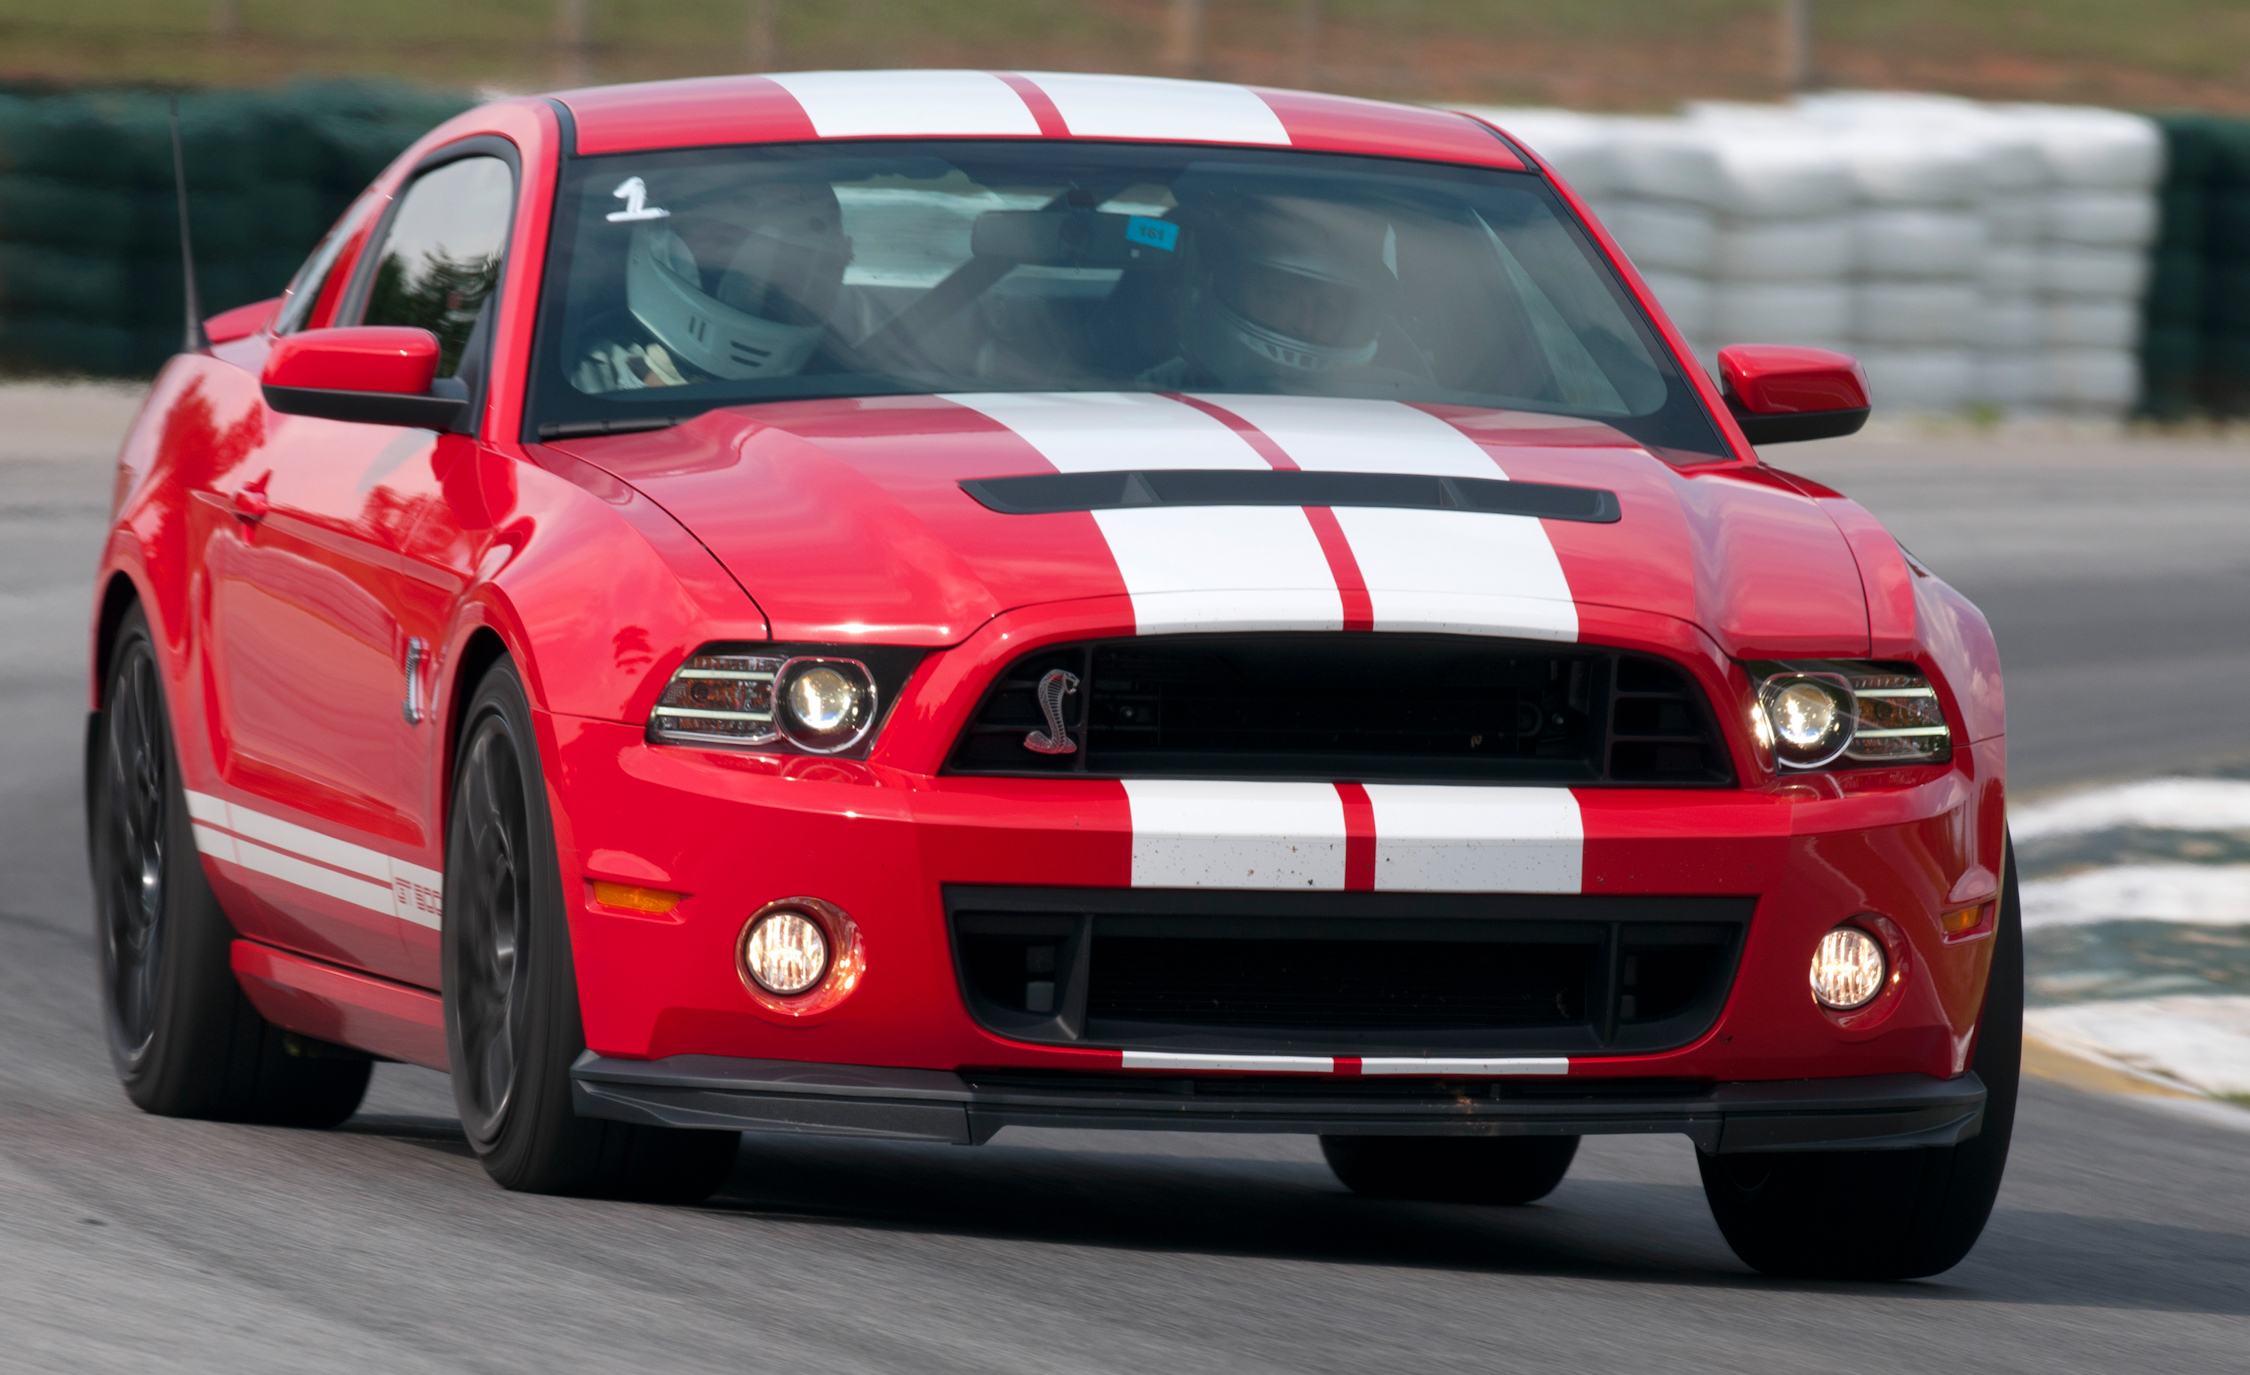 2013 Ford Mustang Shelby GT500 Red Test Drive Front Corner (View 9 of 47)